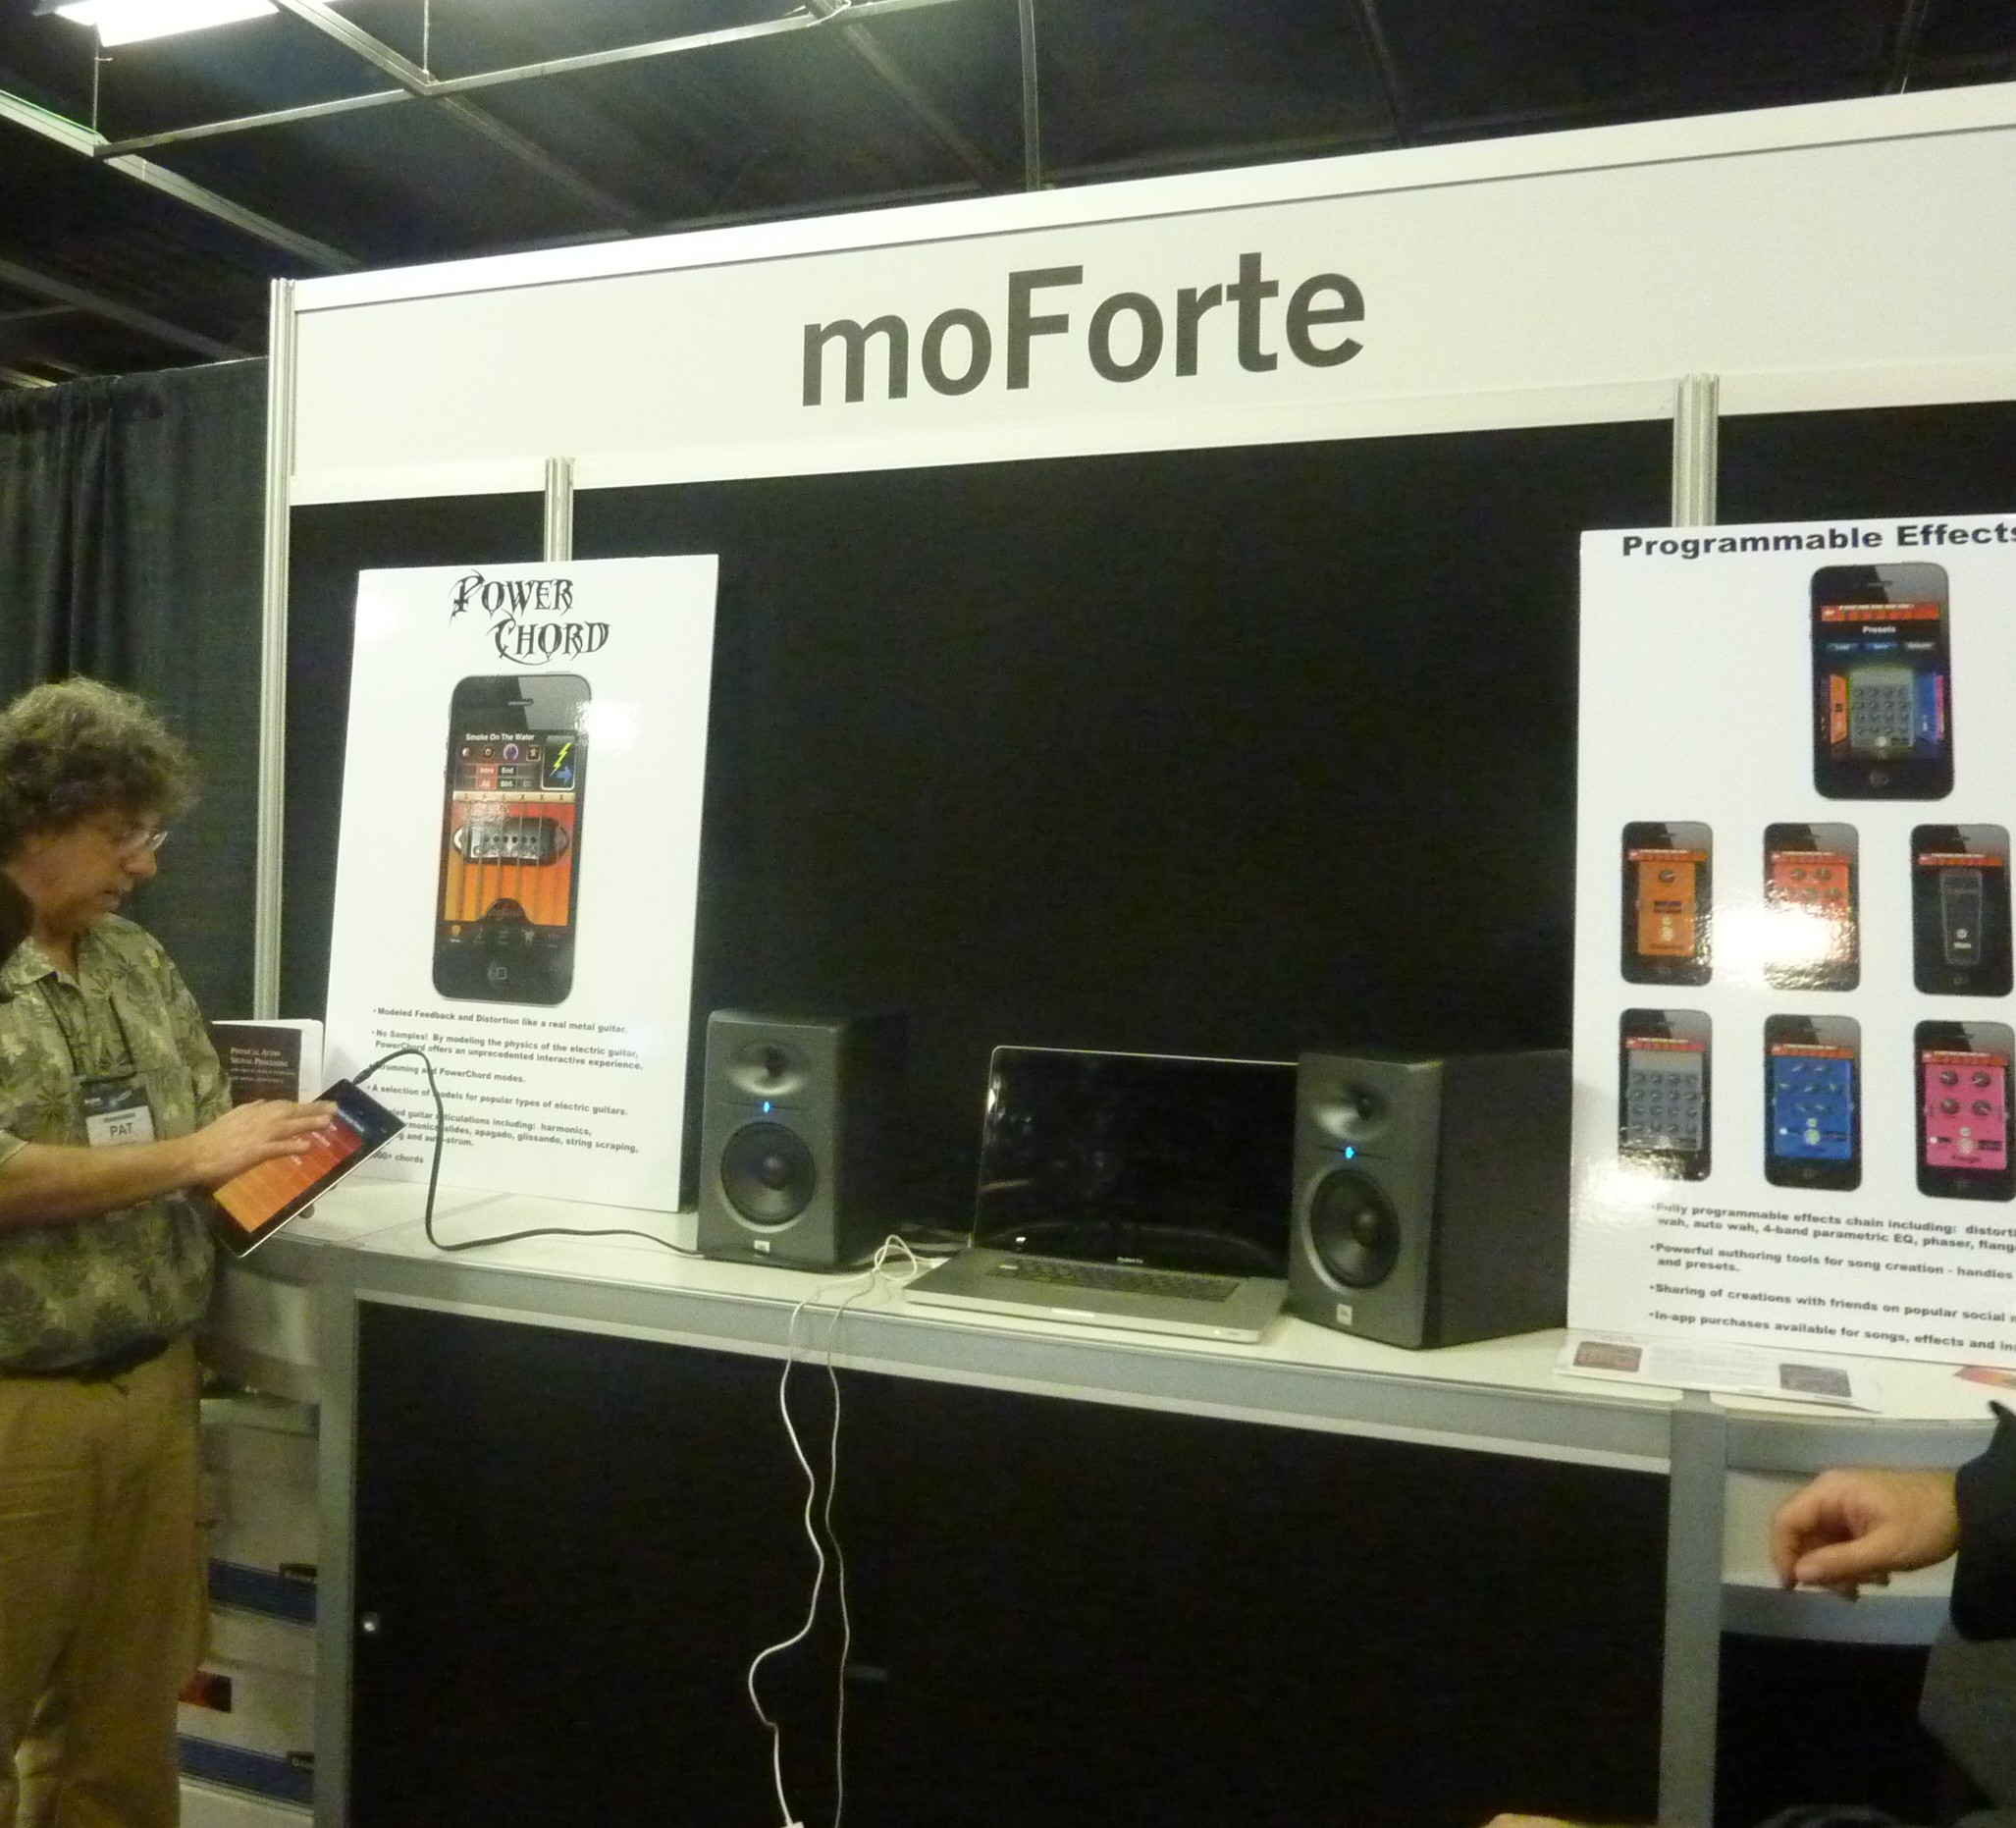 MoForte Powerchord guitar app display